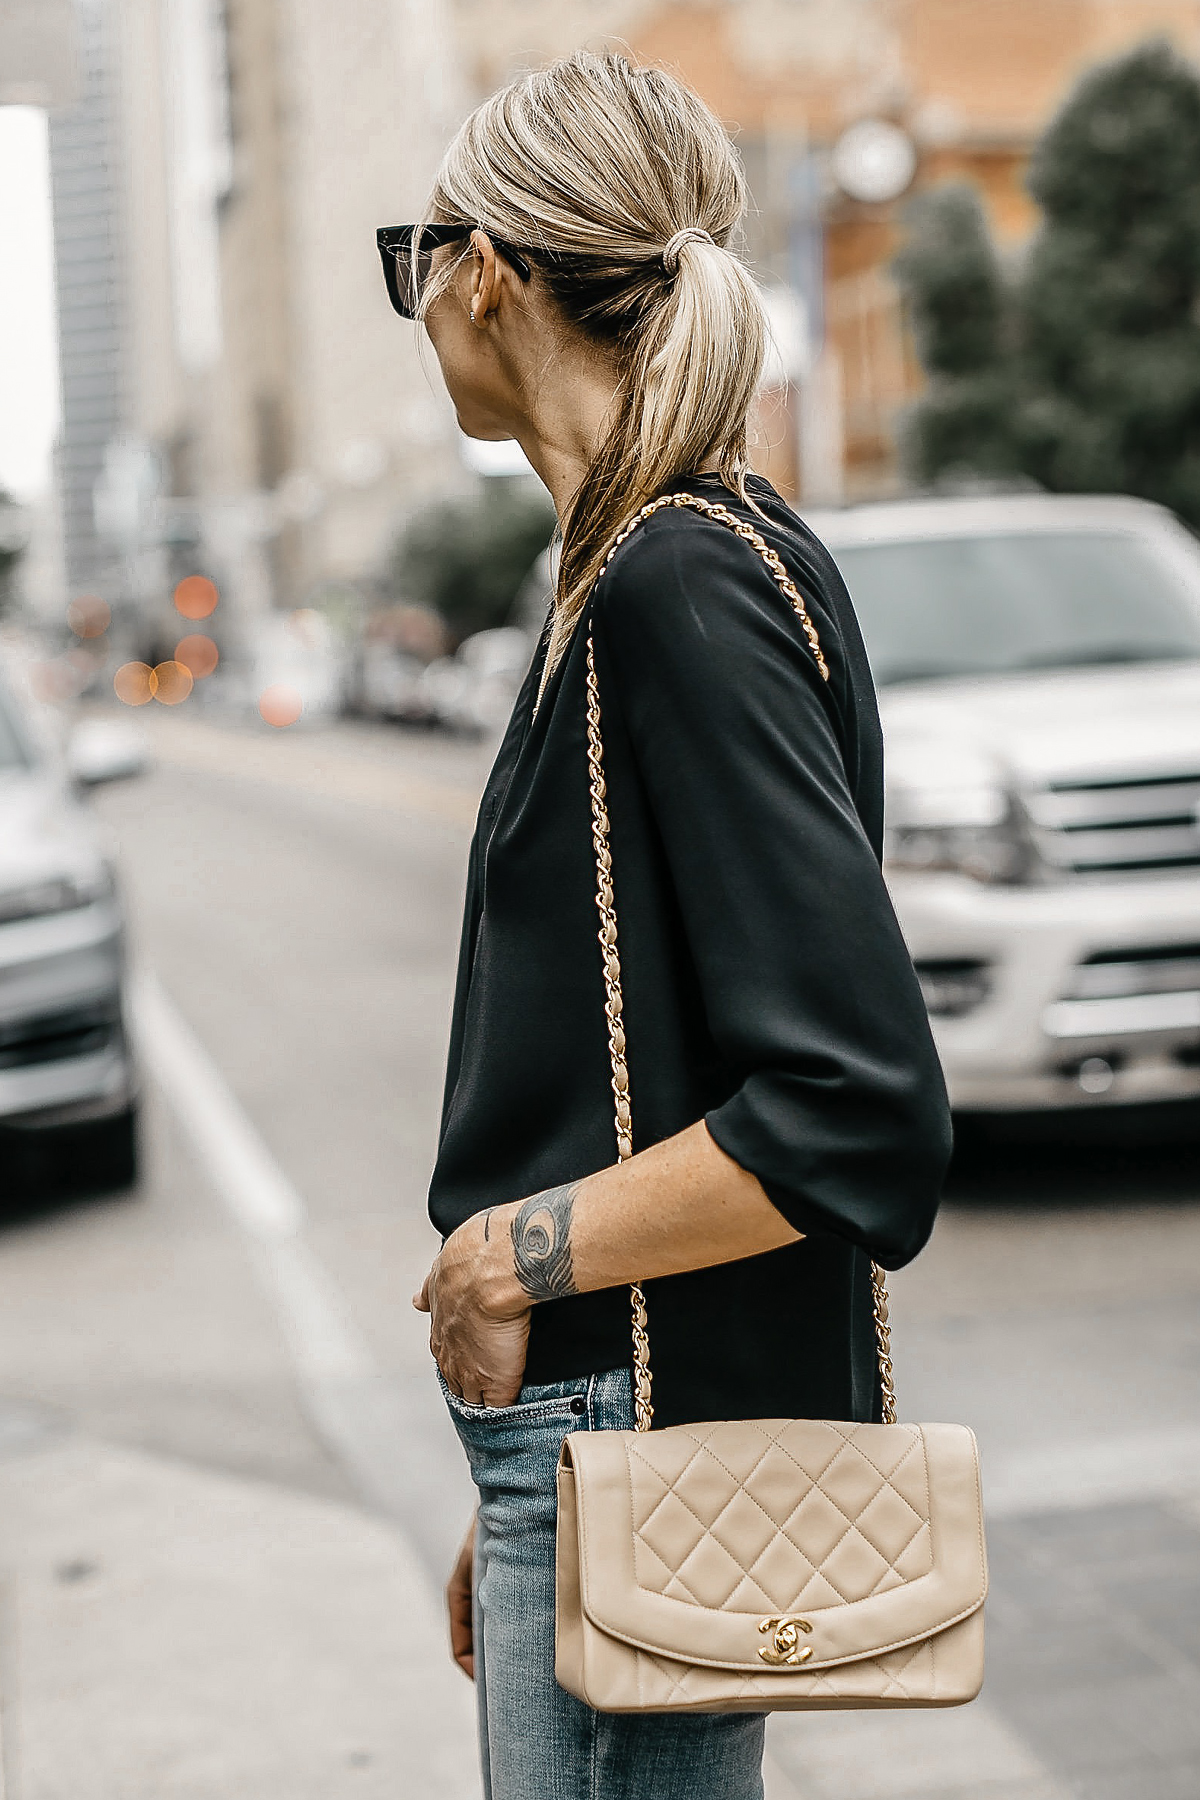 Blonde Woman Wearing Black Top Tan Chanel Quilted Handbag Fashion Jackson Dallas Blogger Fashion Blogger Street Style